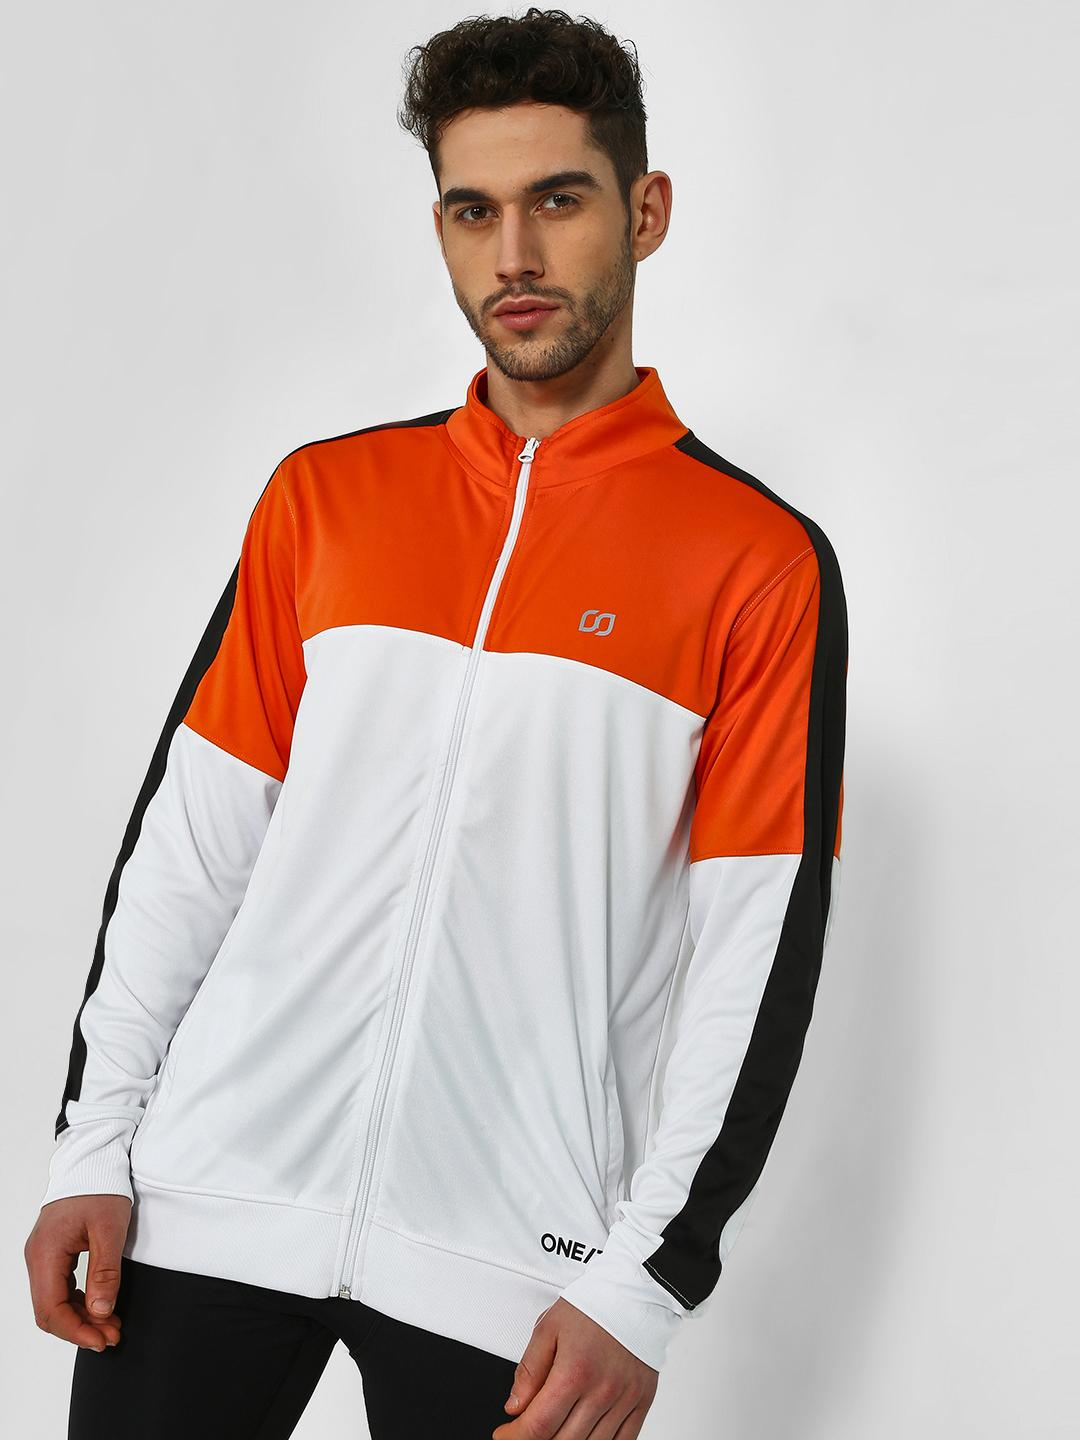 ONE/ZERO BY KOOVS Multi Colour Block Track Jacket 1